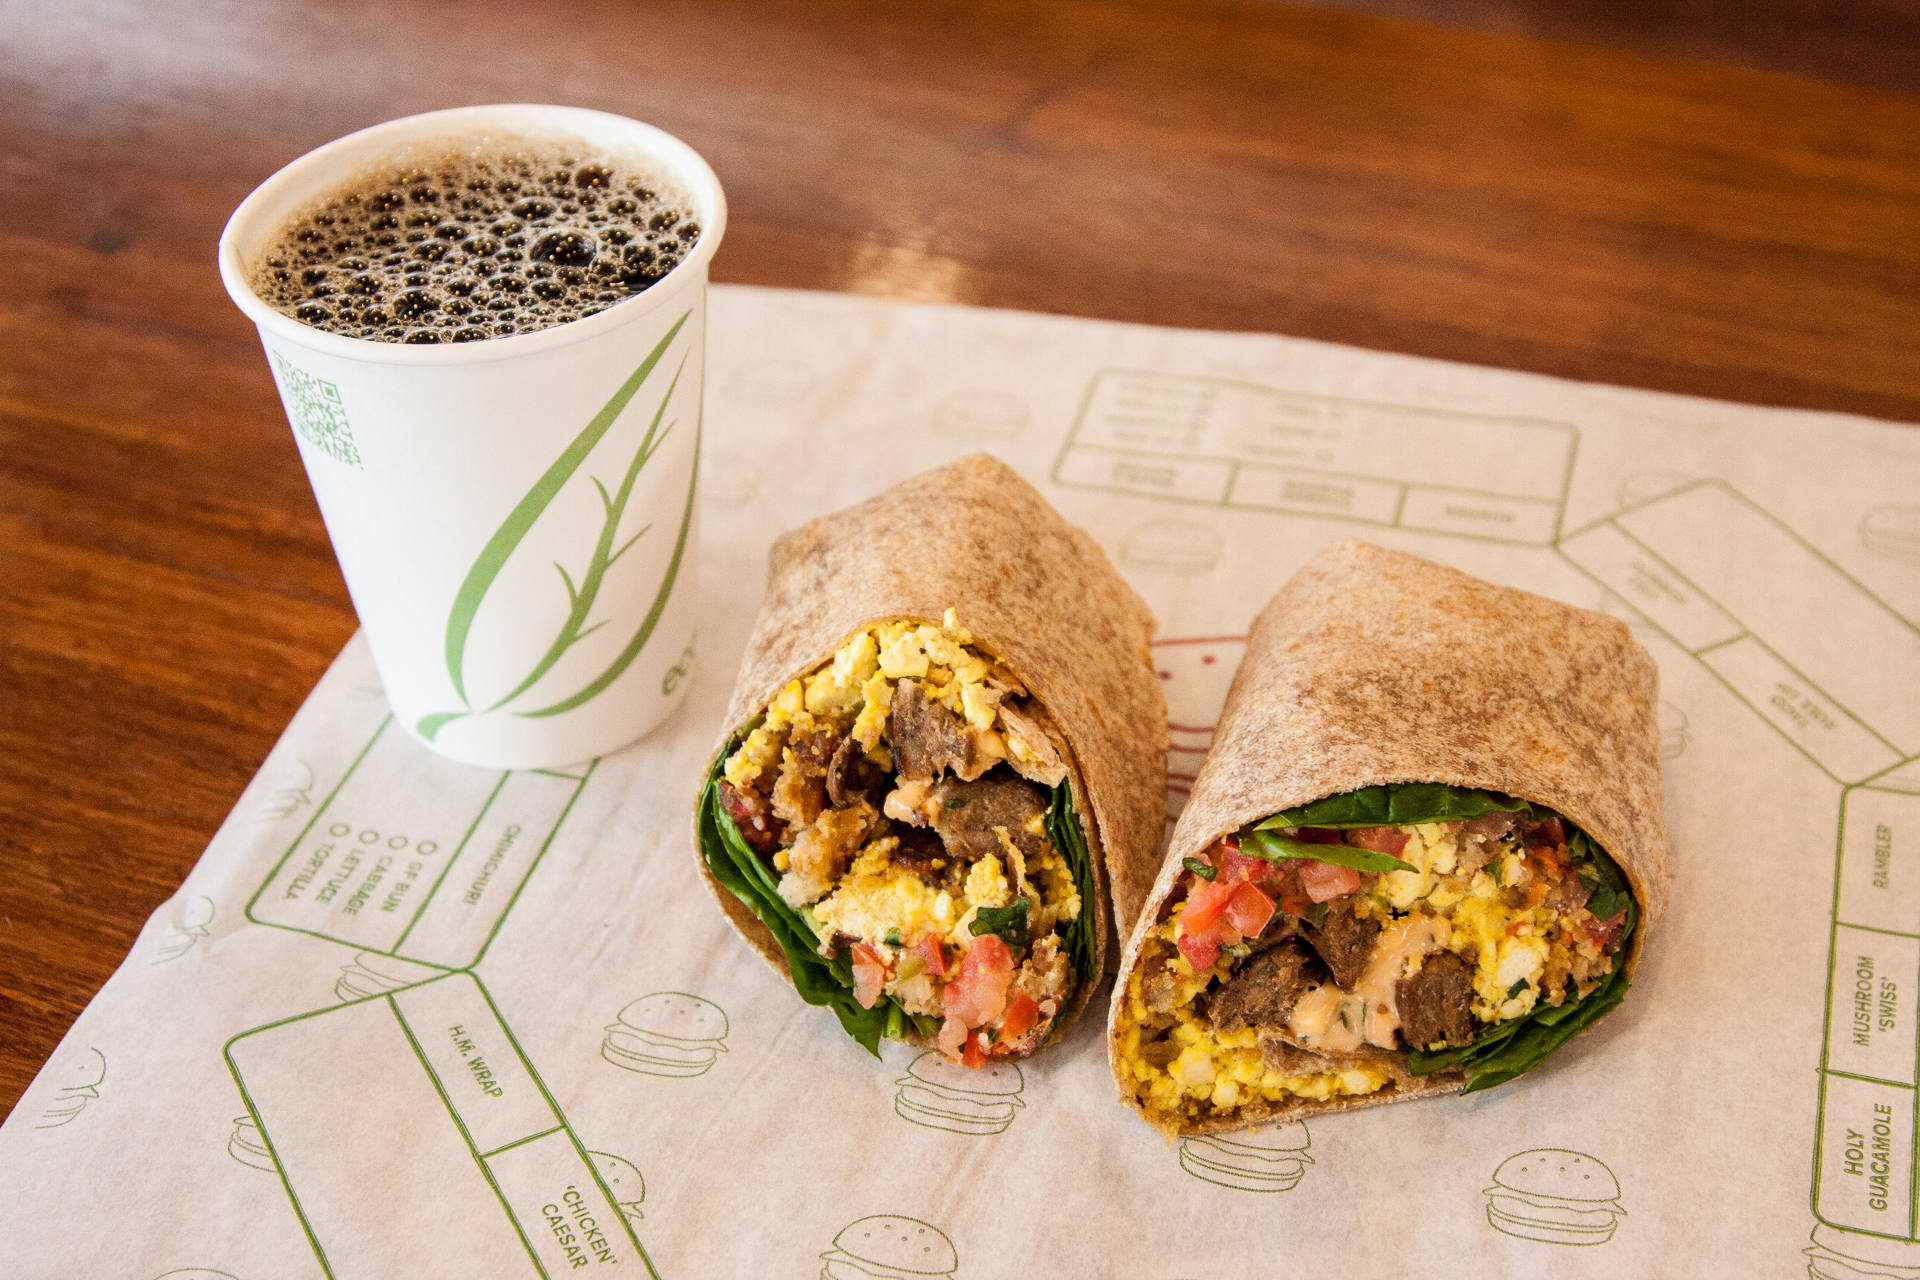 Plant Power Fast Food in Encinitas Ca Breakfast Burrito & Coffee